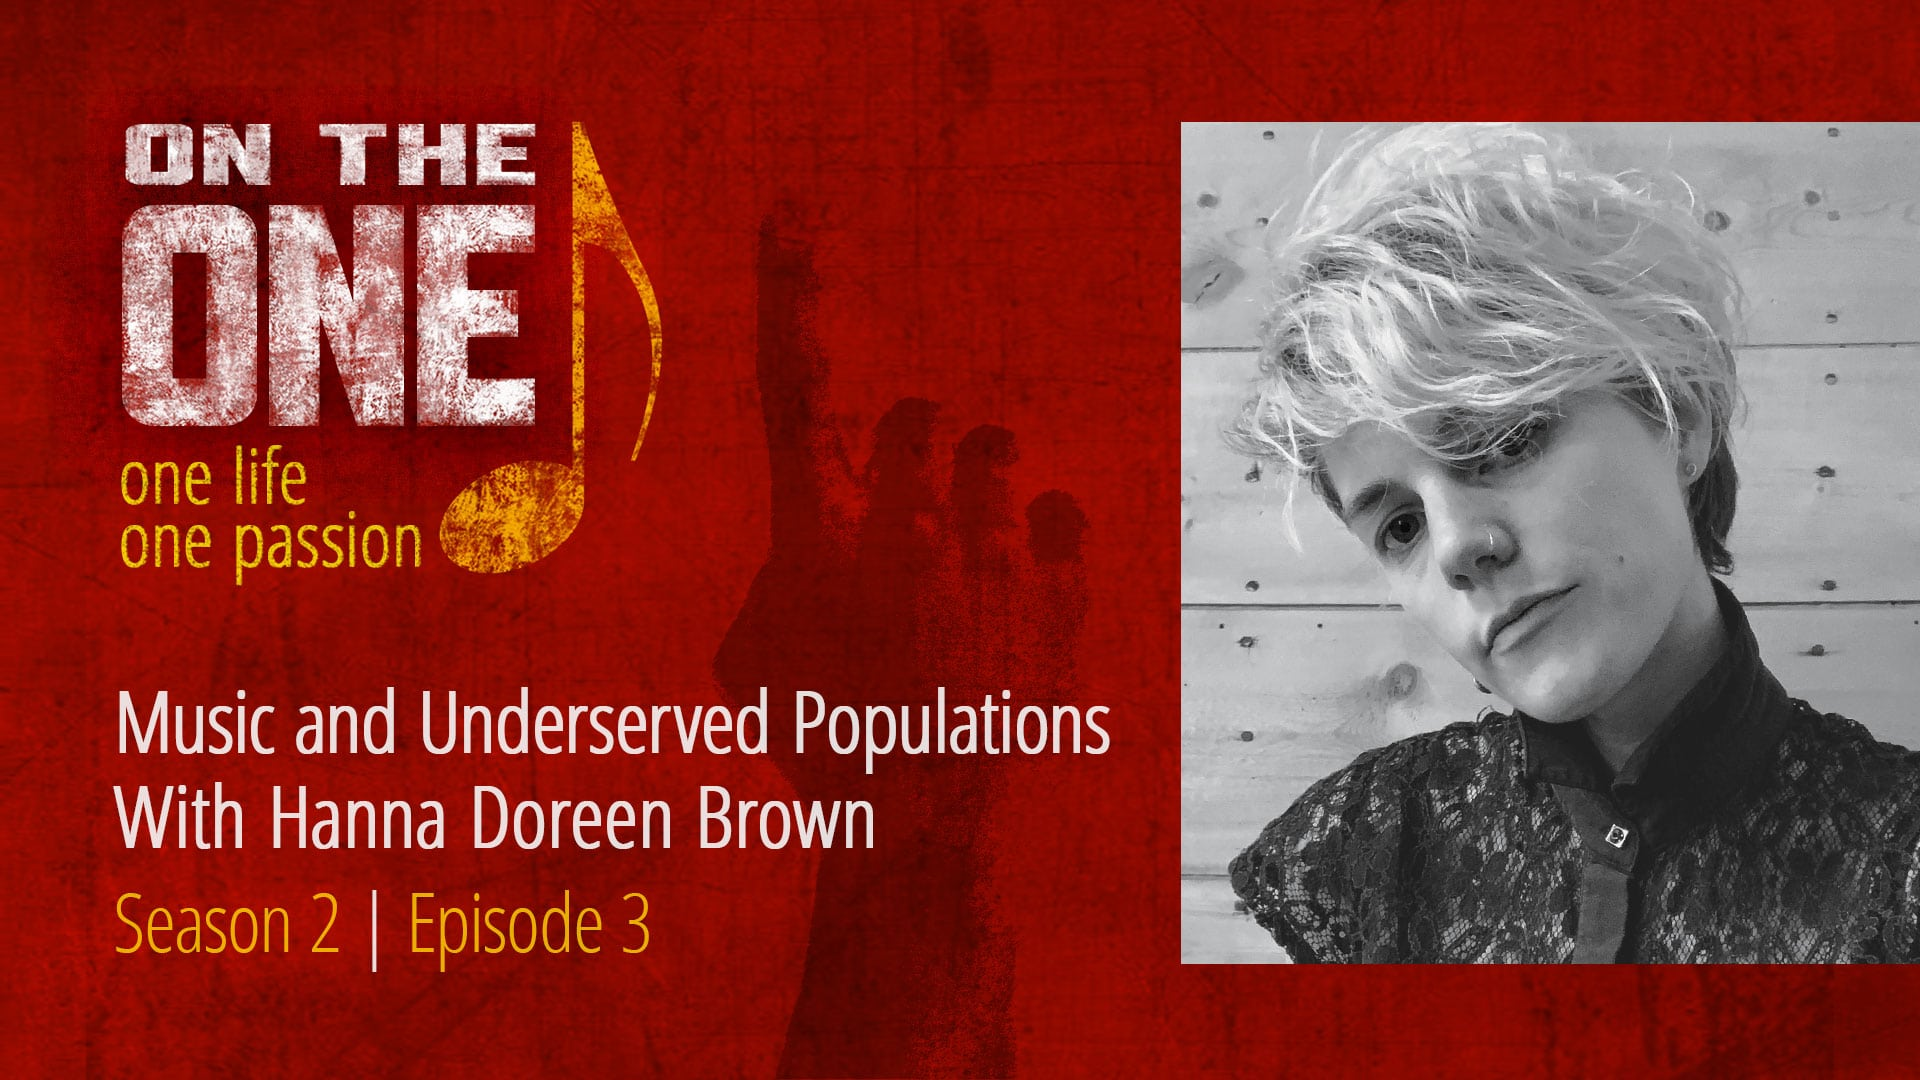 Music and Underserved Populations with Hanna Doreen Brown of Sound Affects in Fort Collins, Colorado.